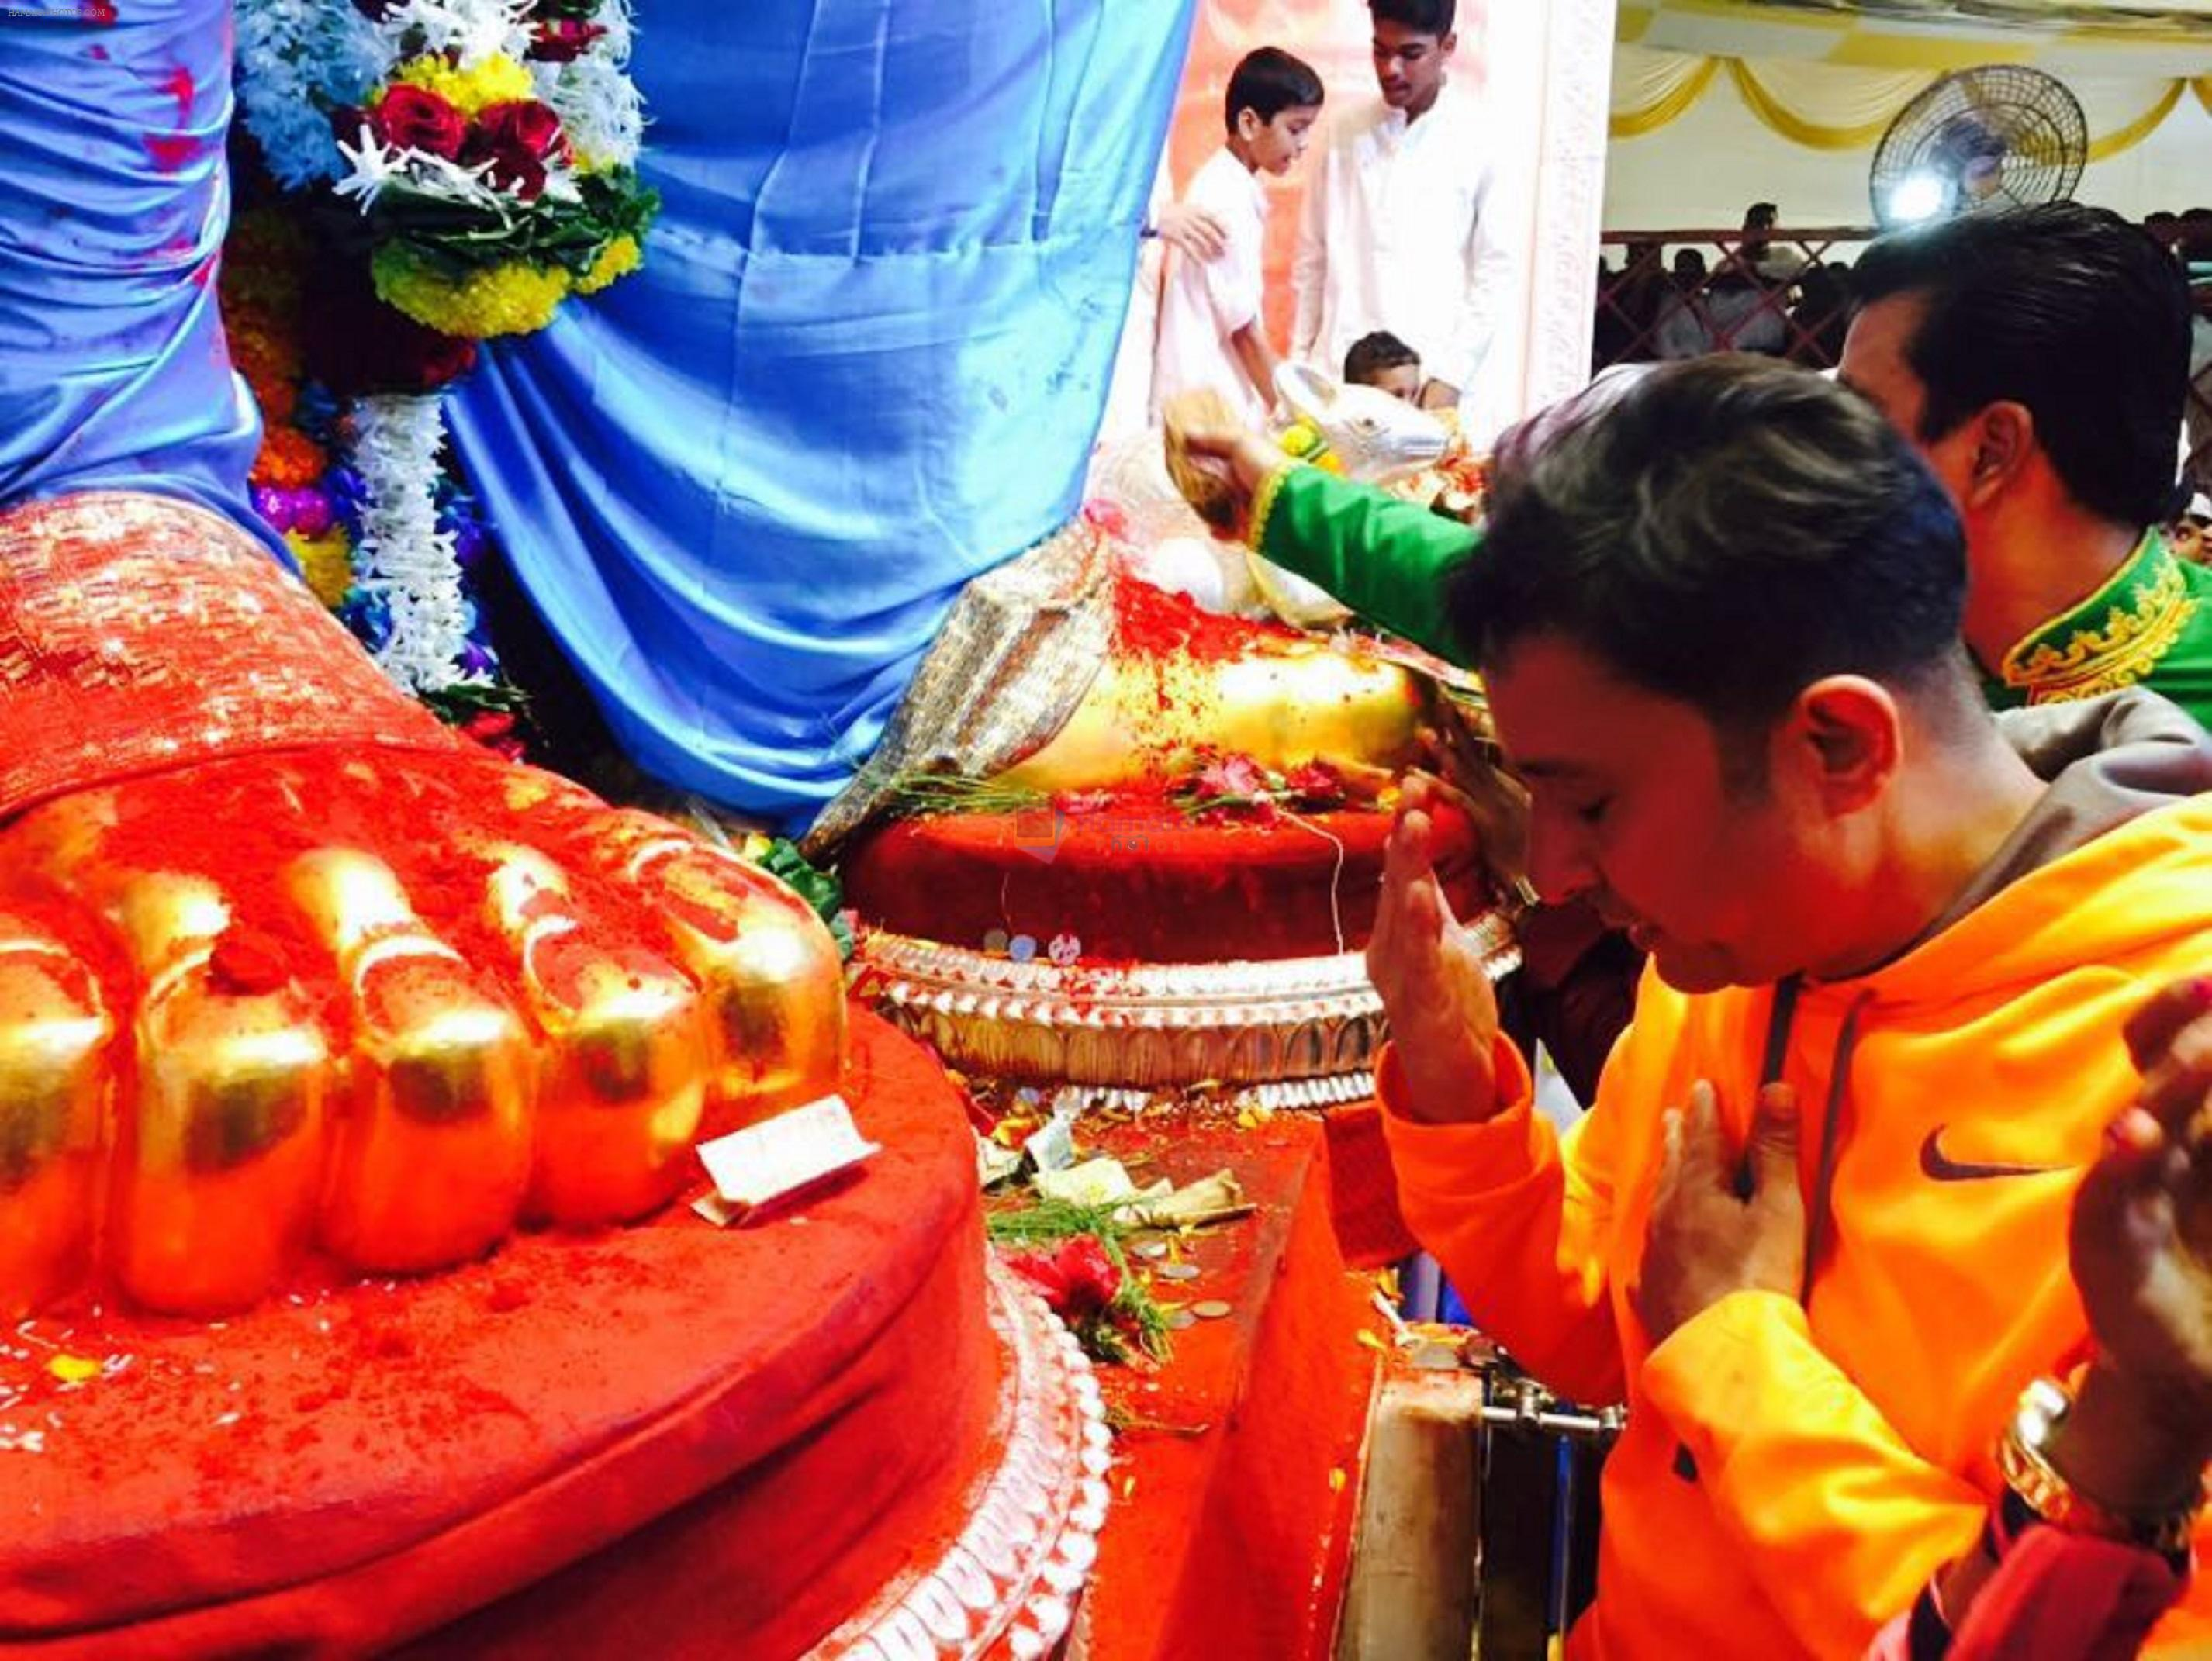 Sukhwinder Singh during his visit to Lalbaug cha raja on 8th Sept 2016